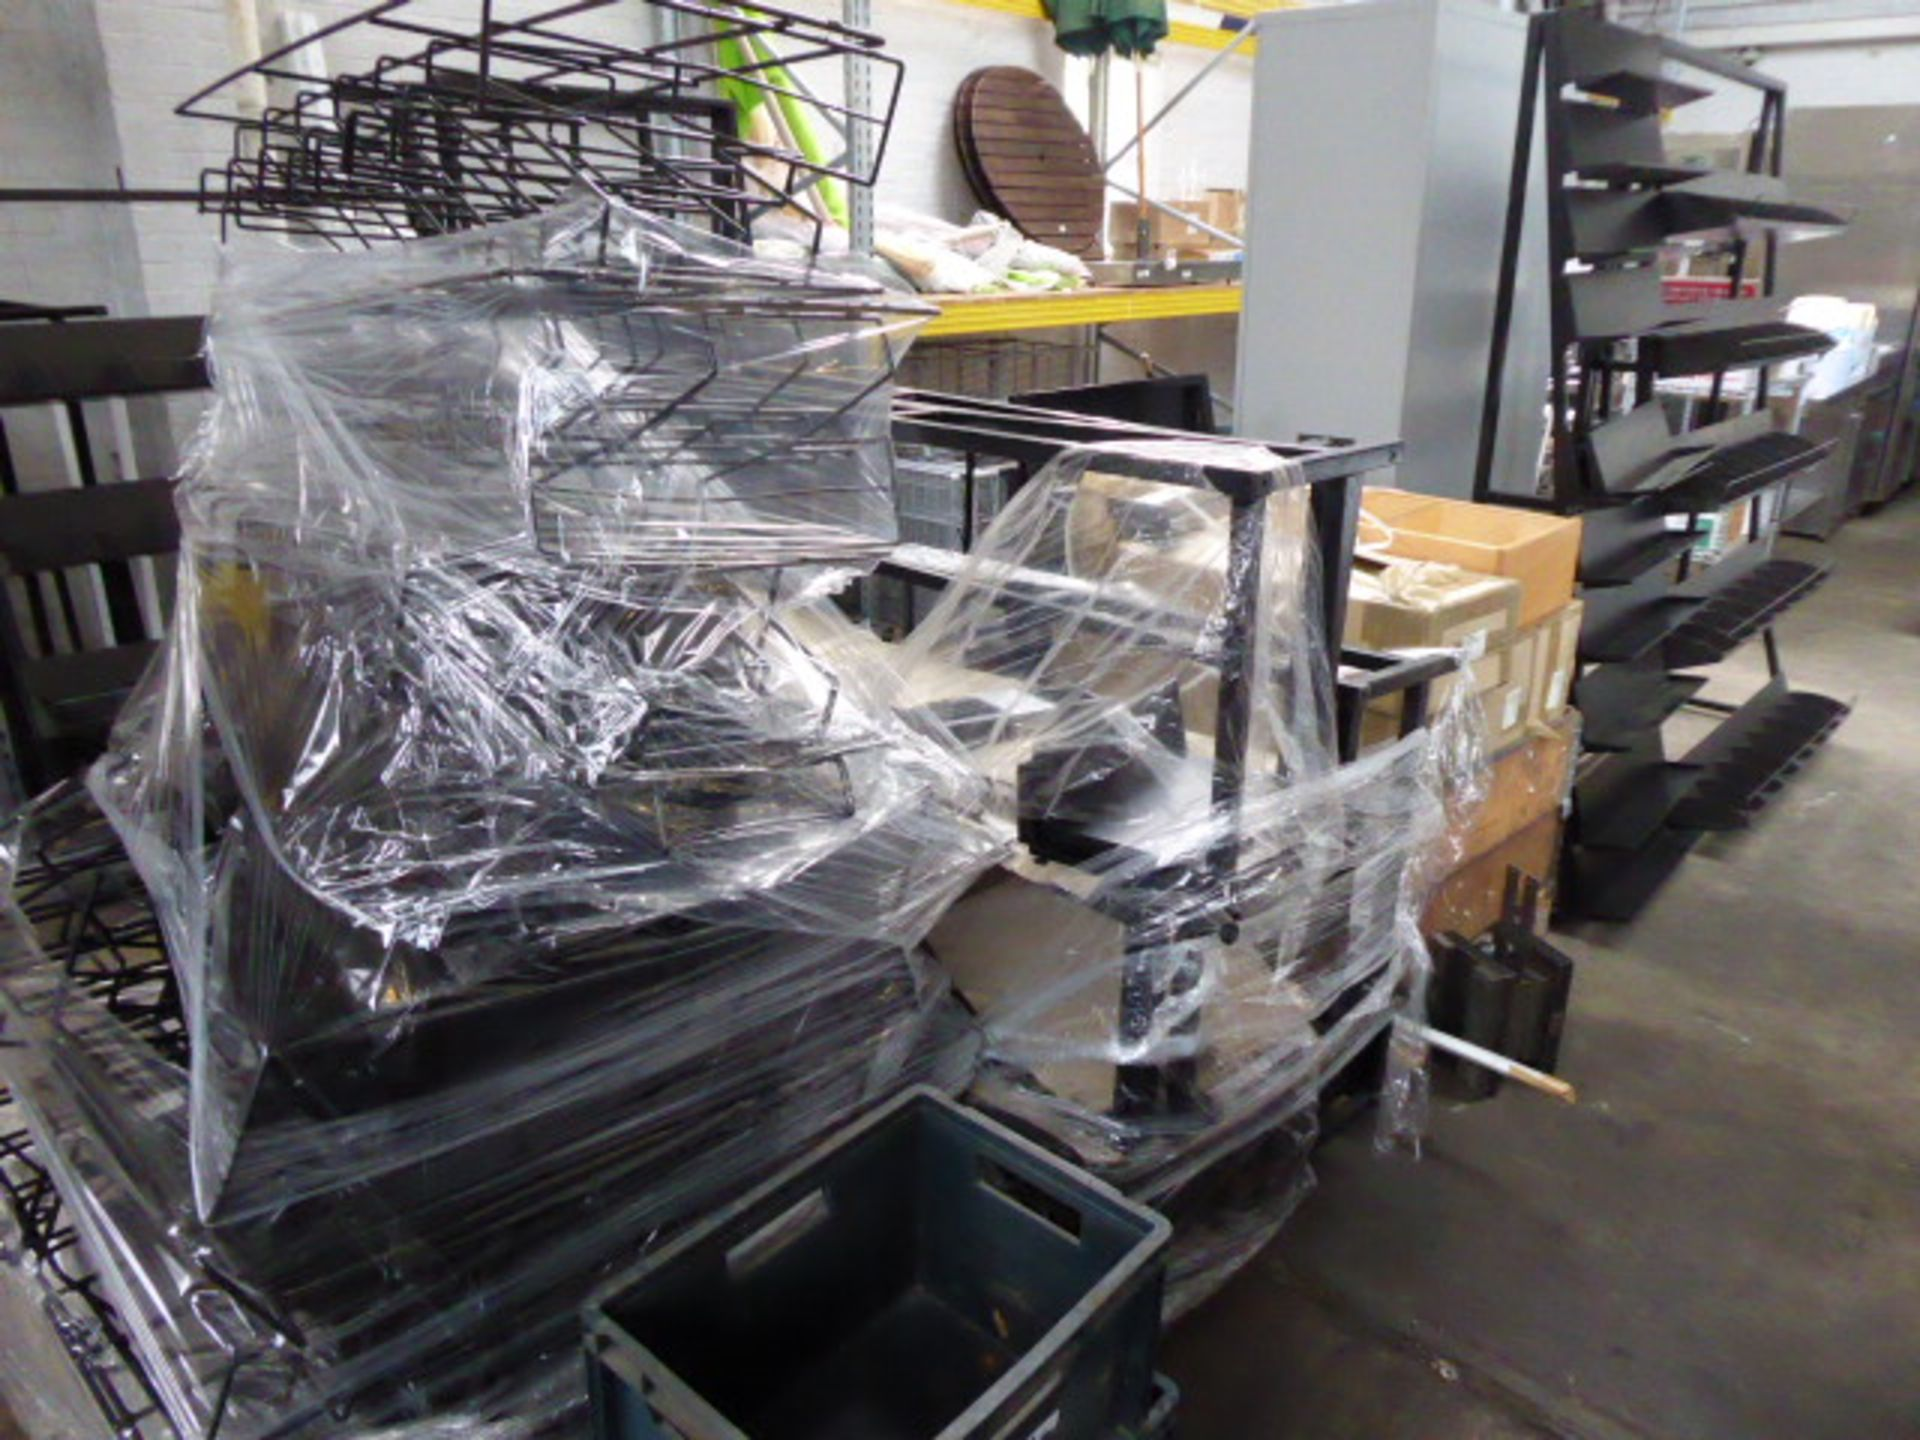 Lot 754 - Large quantity of assorted metal stocks and work in progress. Includes 8 pallets of assorted